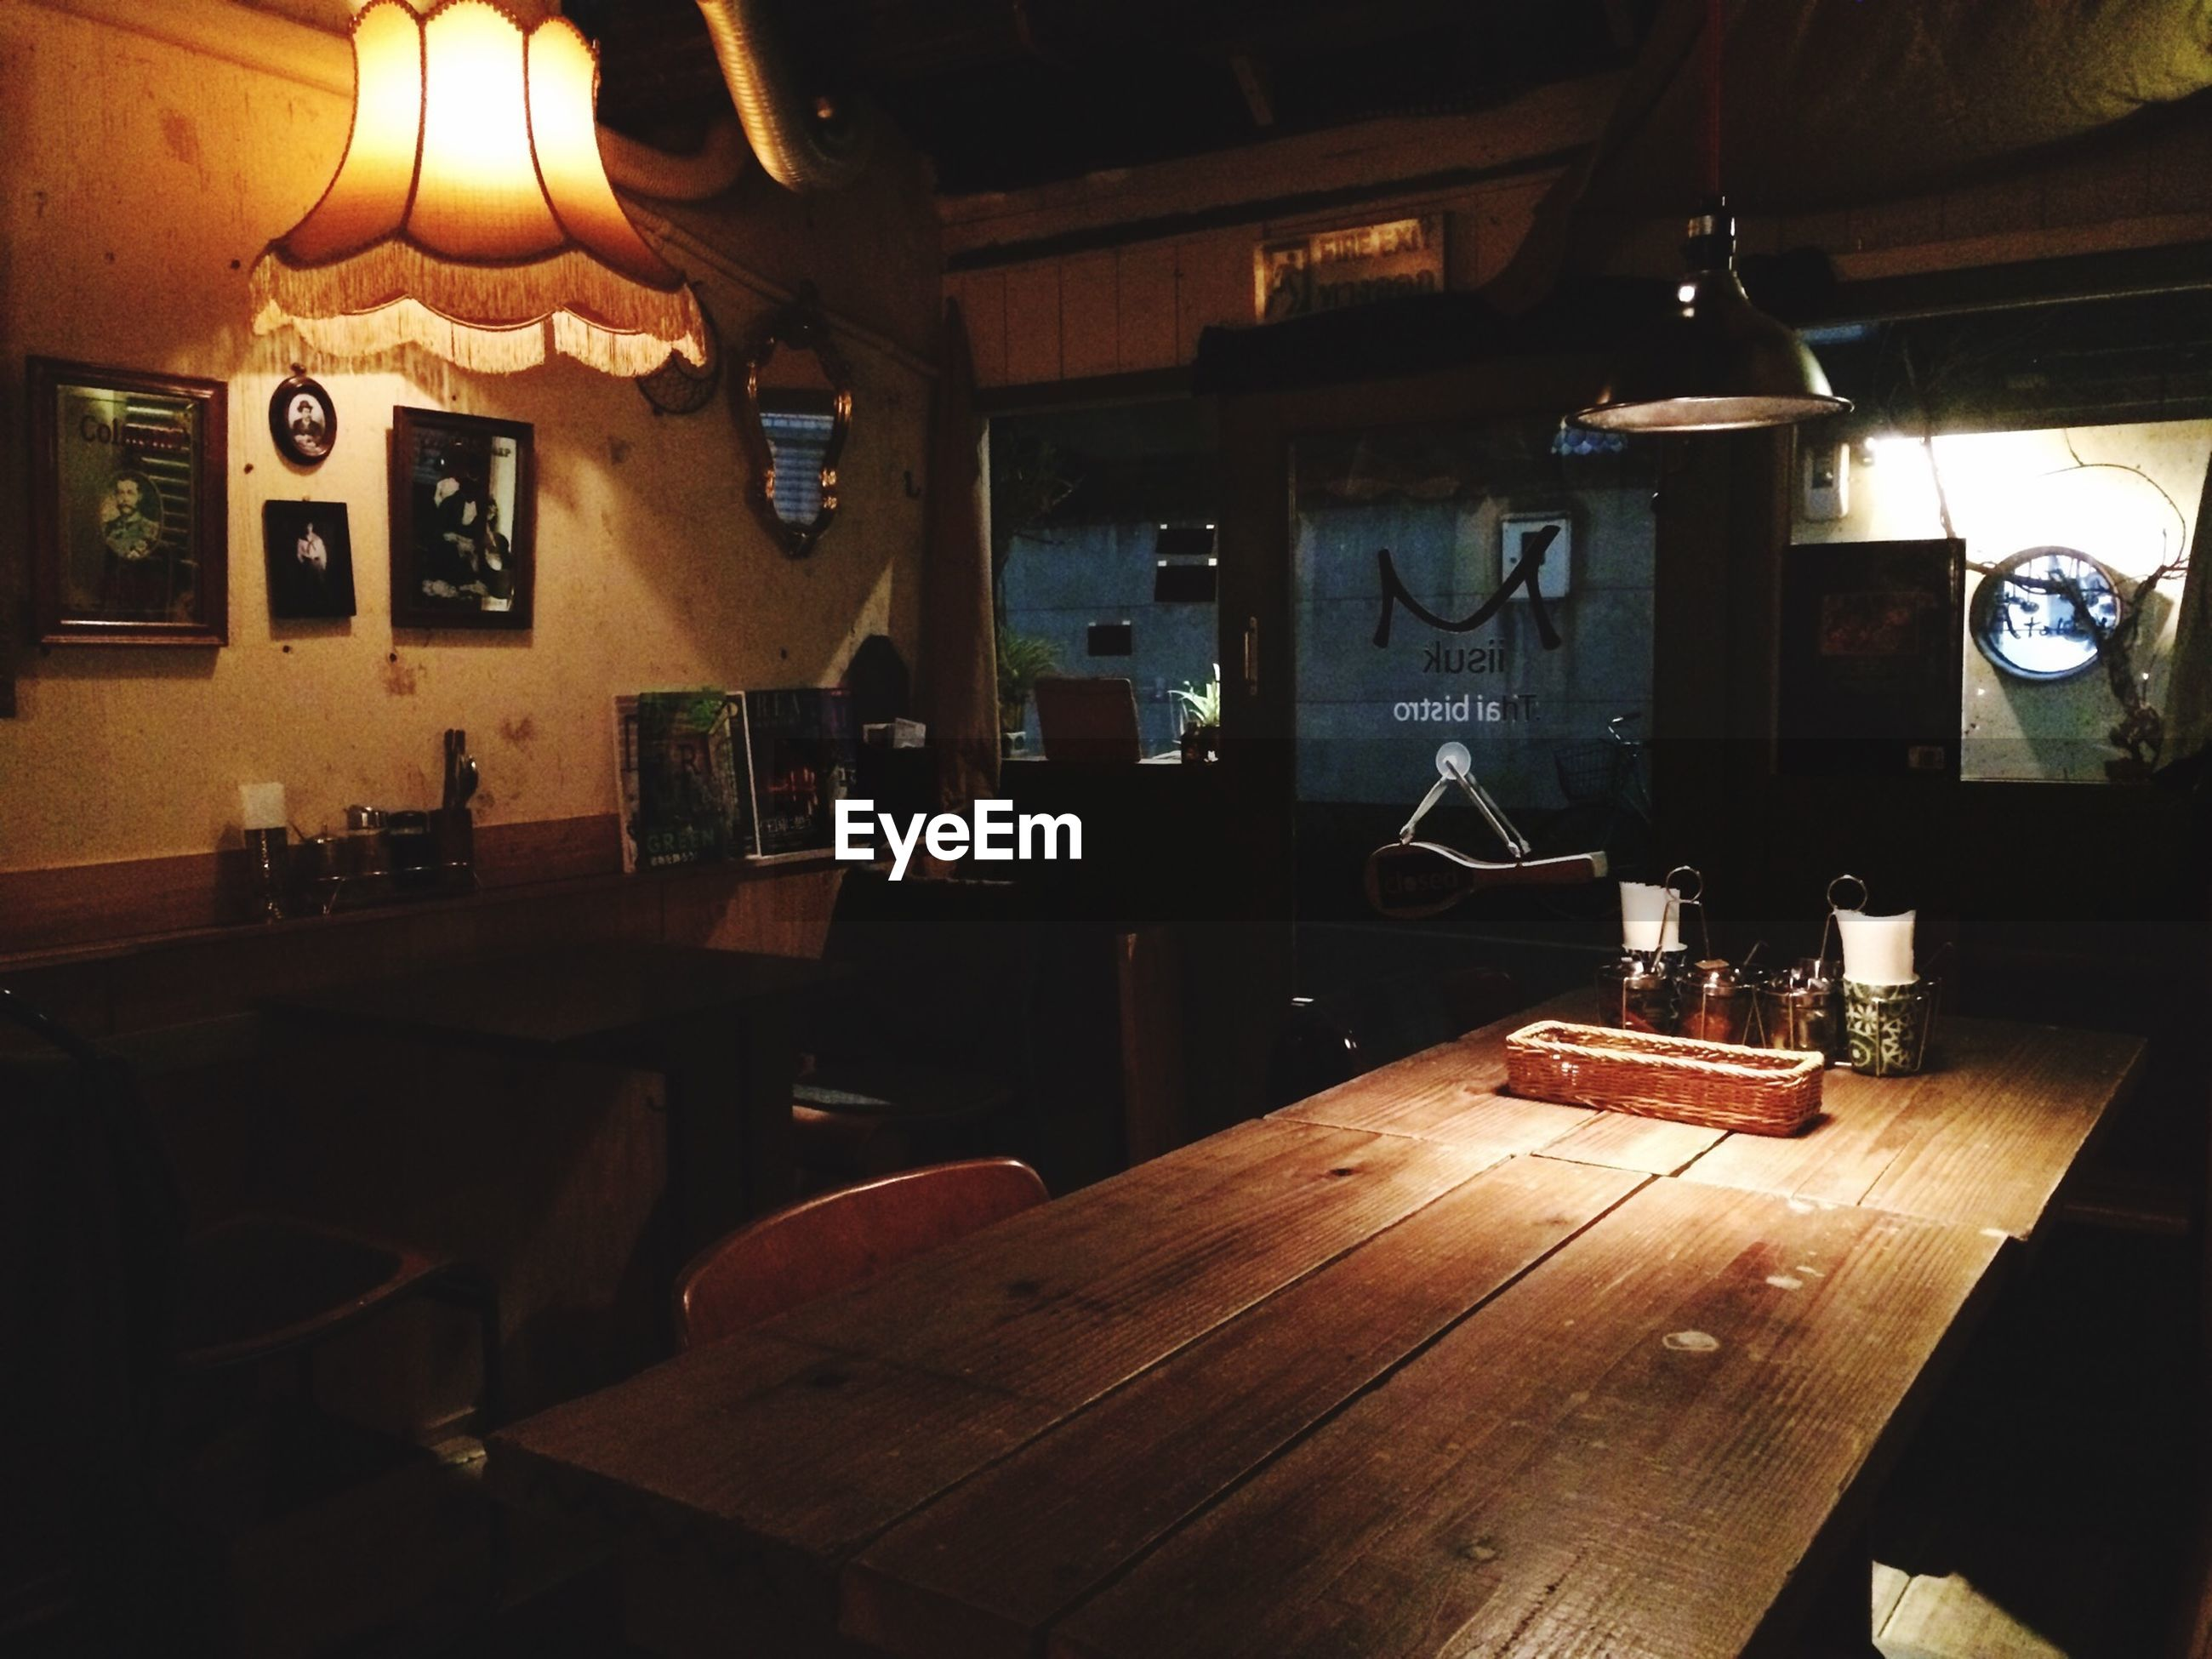 indoors, illuminated, chair, table, lighting equipment, home interior, absence, empty, built structure, architecture, interior, electric lamp, room, furniture, wood - material, house, no people, window, restaurant, night